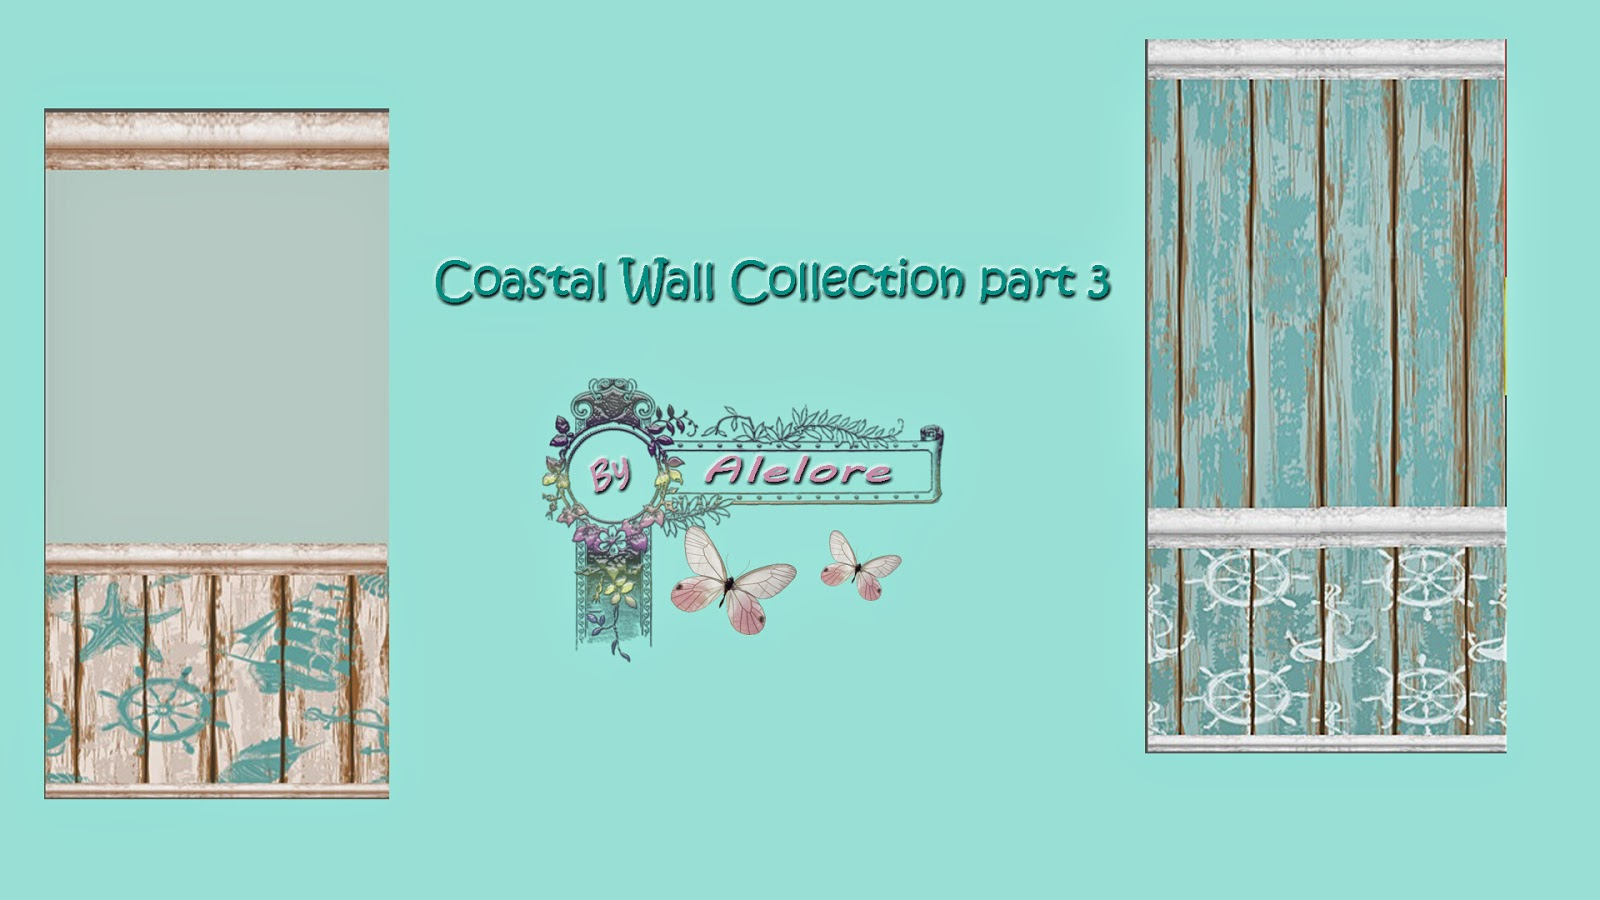 Coastal Wall Collection Pt. 3 by Alelore